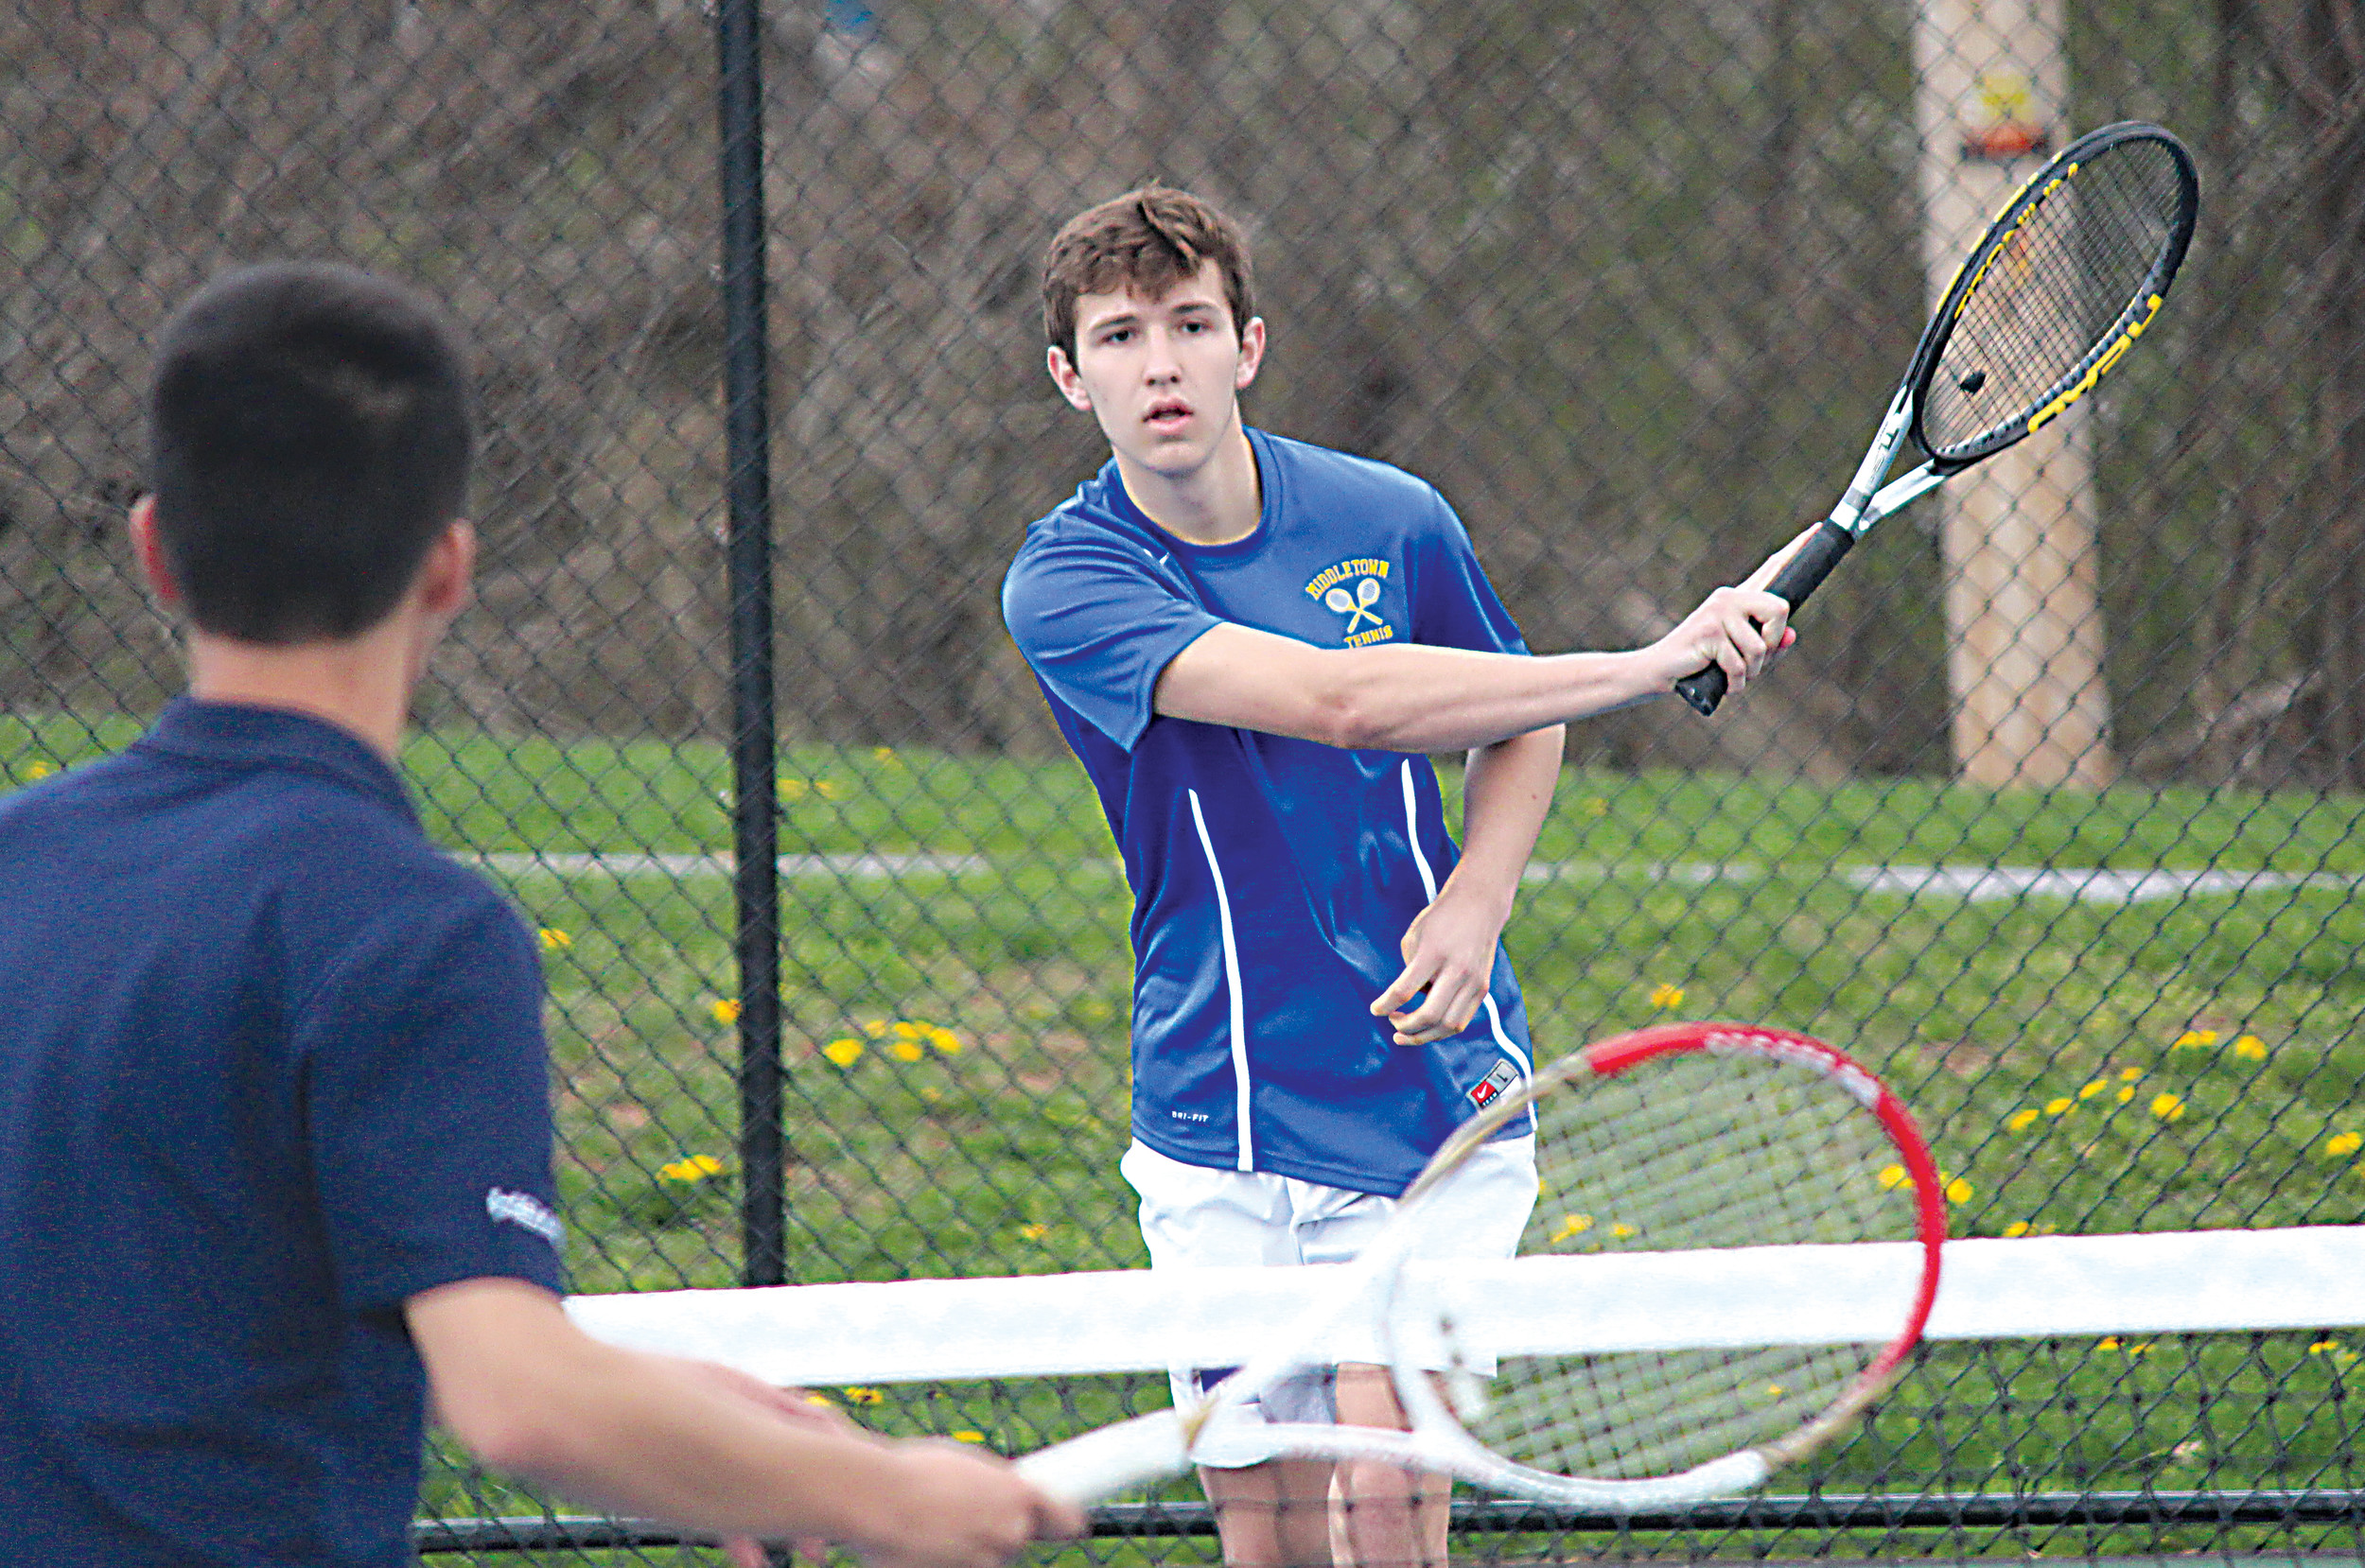 Blake Gill in action vs. Harrisburg Academy.